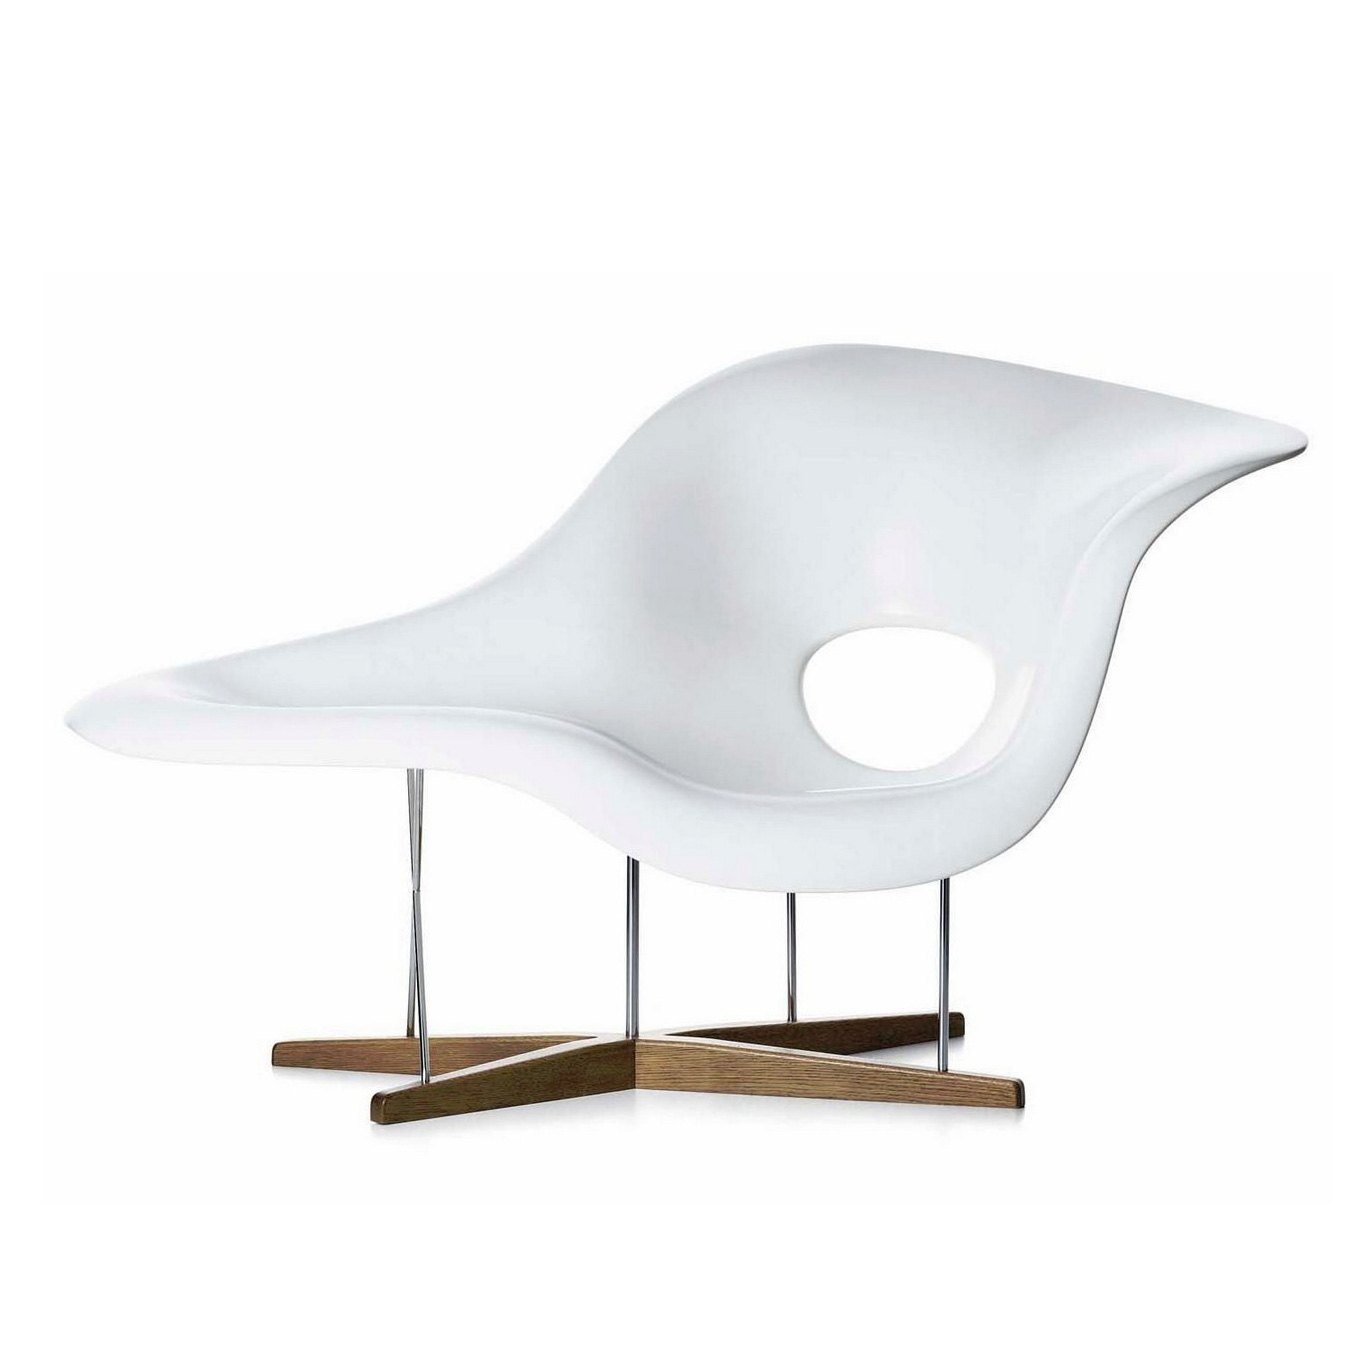 Charles eames chaise longue bauhaus chaiselongue for Chaise longue cavallino